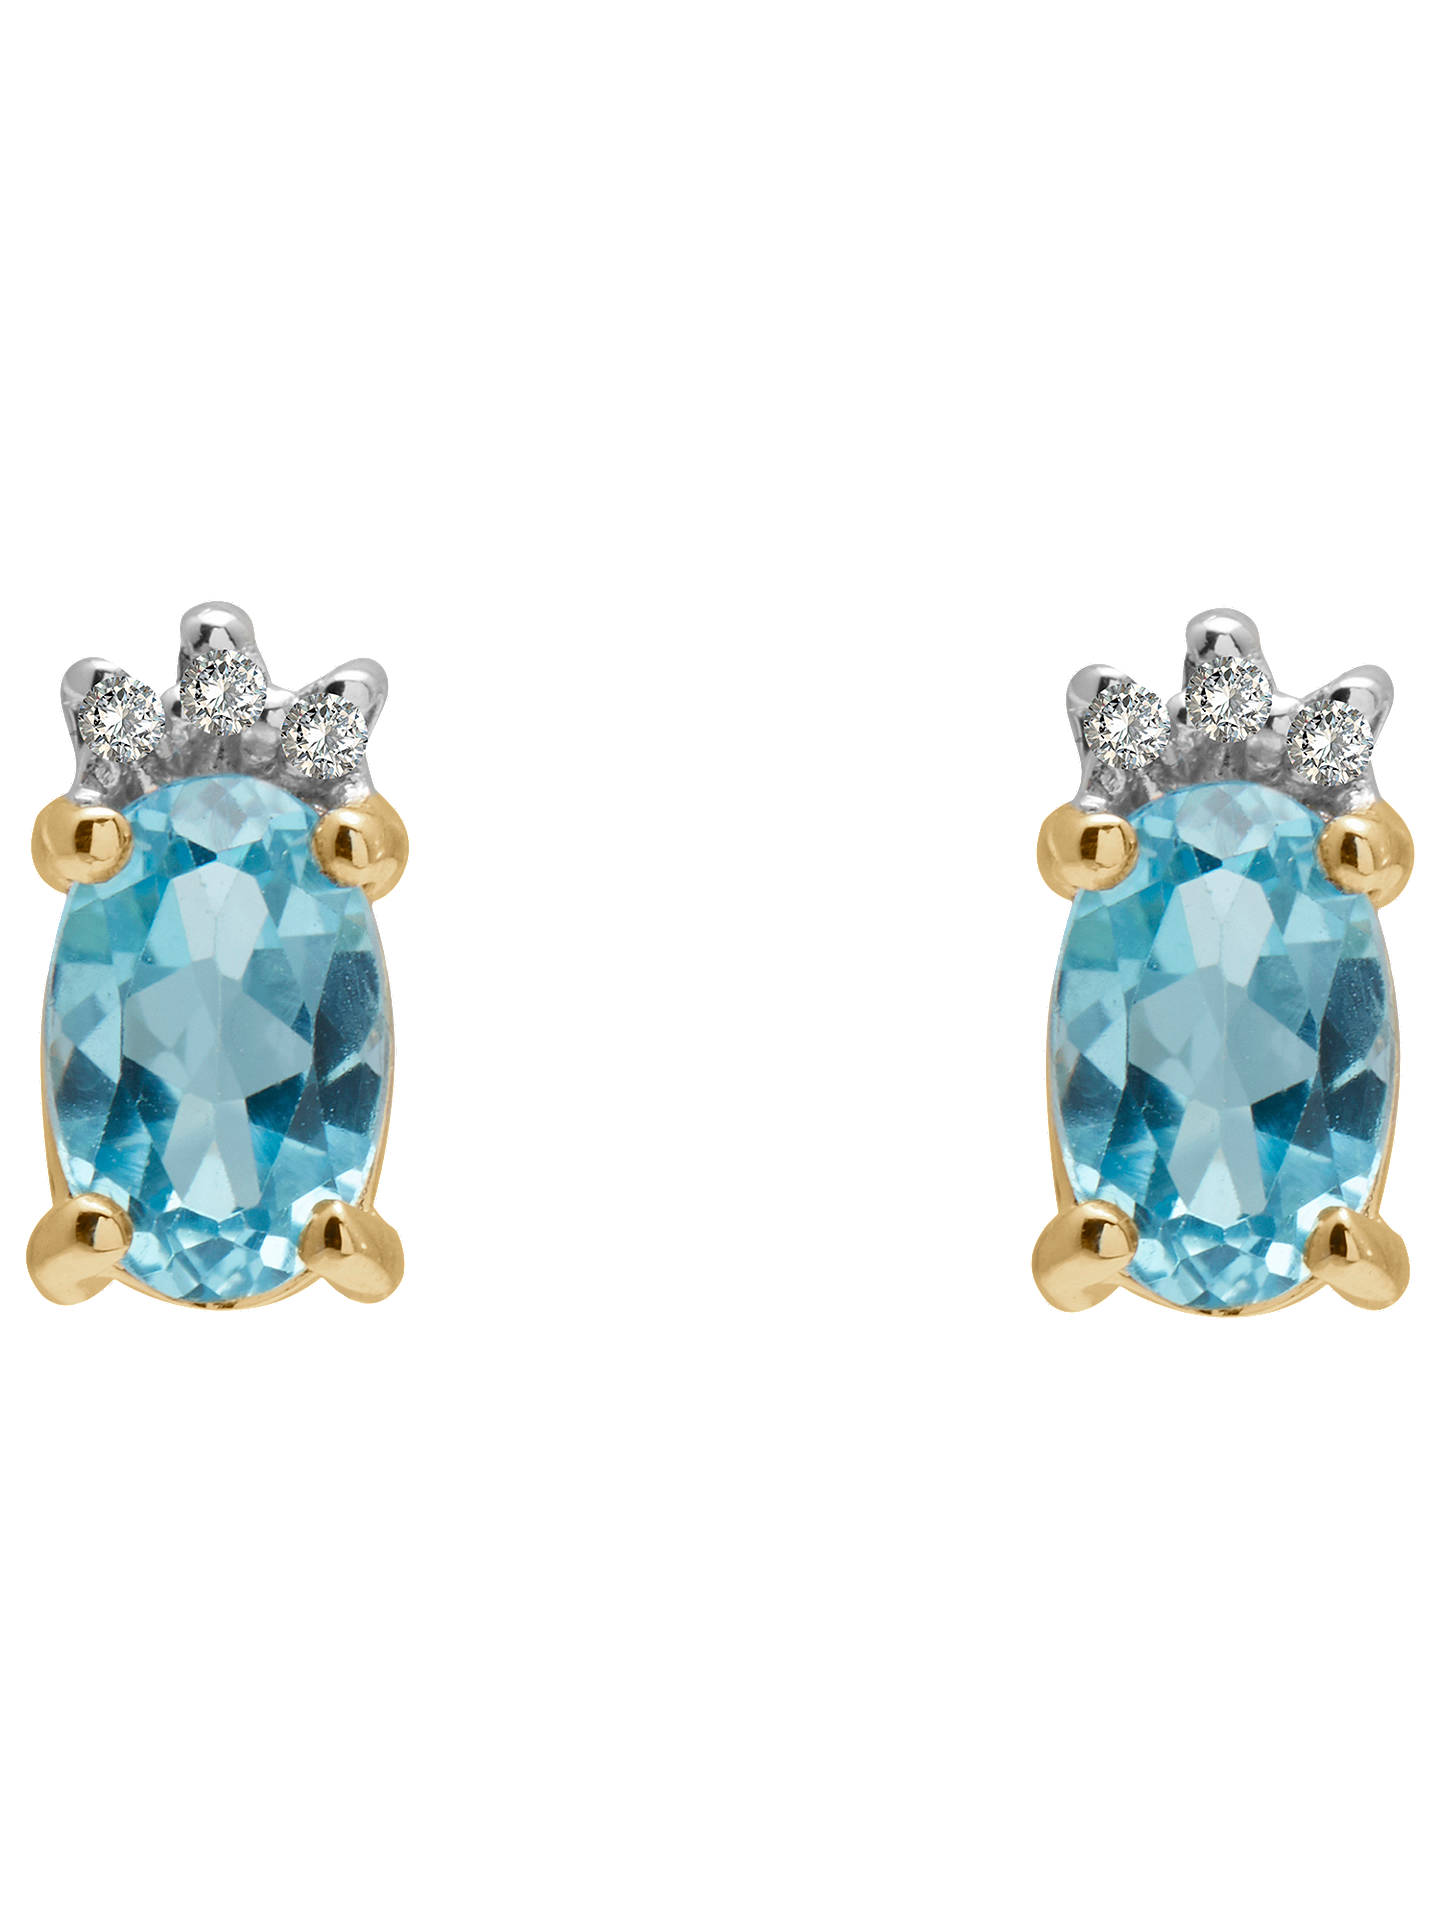 A B Davis 9ct Gold Diamond And Semi Precious Stone Oval Stud Earrings Blue Topaz